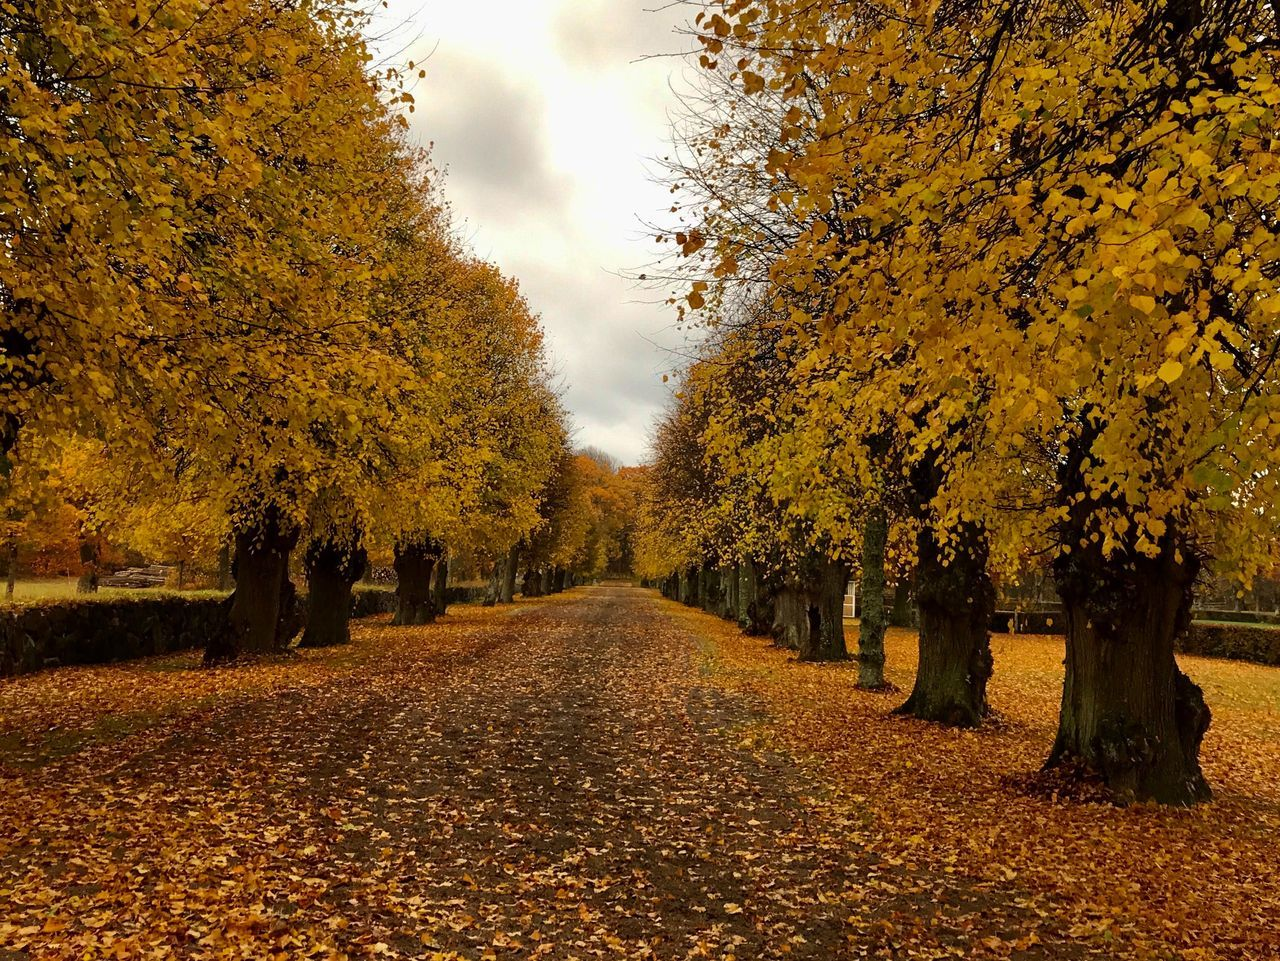 autumn, change, tree, leaf, nature, beauty in nature, yellow, scenics, orange color, tranquility, the way forward, tranquil scene, outdoors, no people, day, landscape, maple, sky